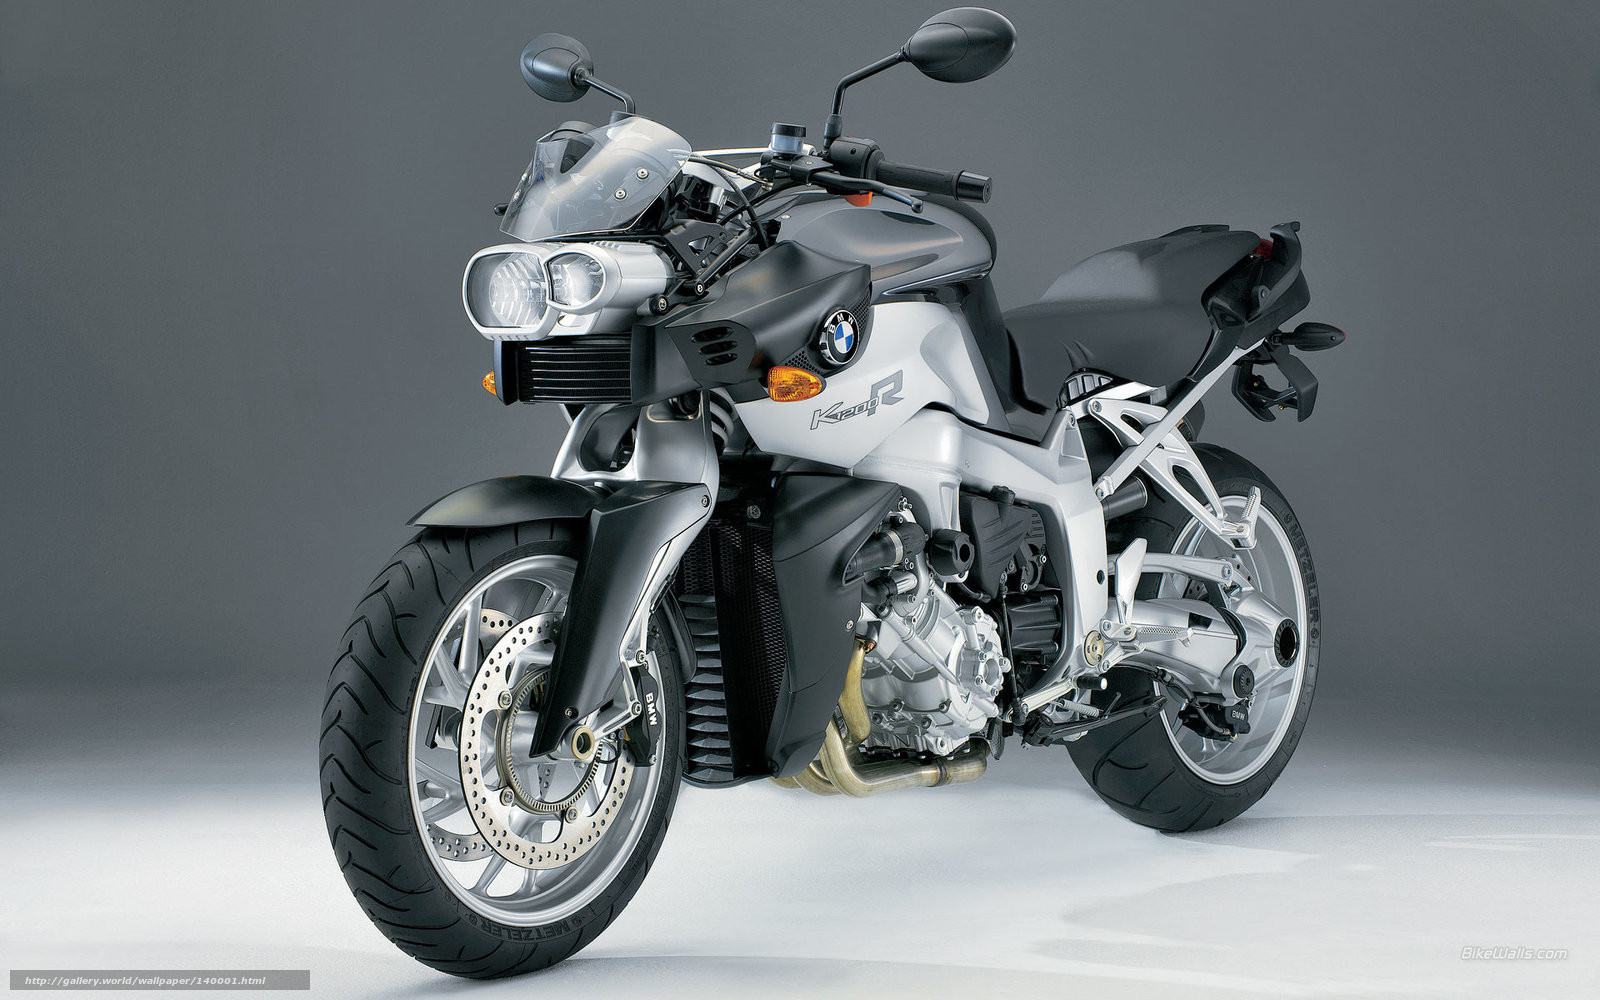 Bmw R 1200: Best Images Collection of Bmw R 1200